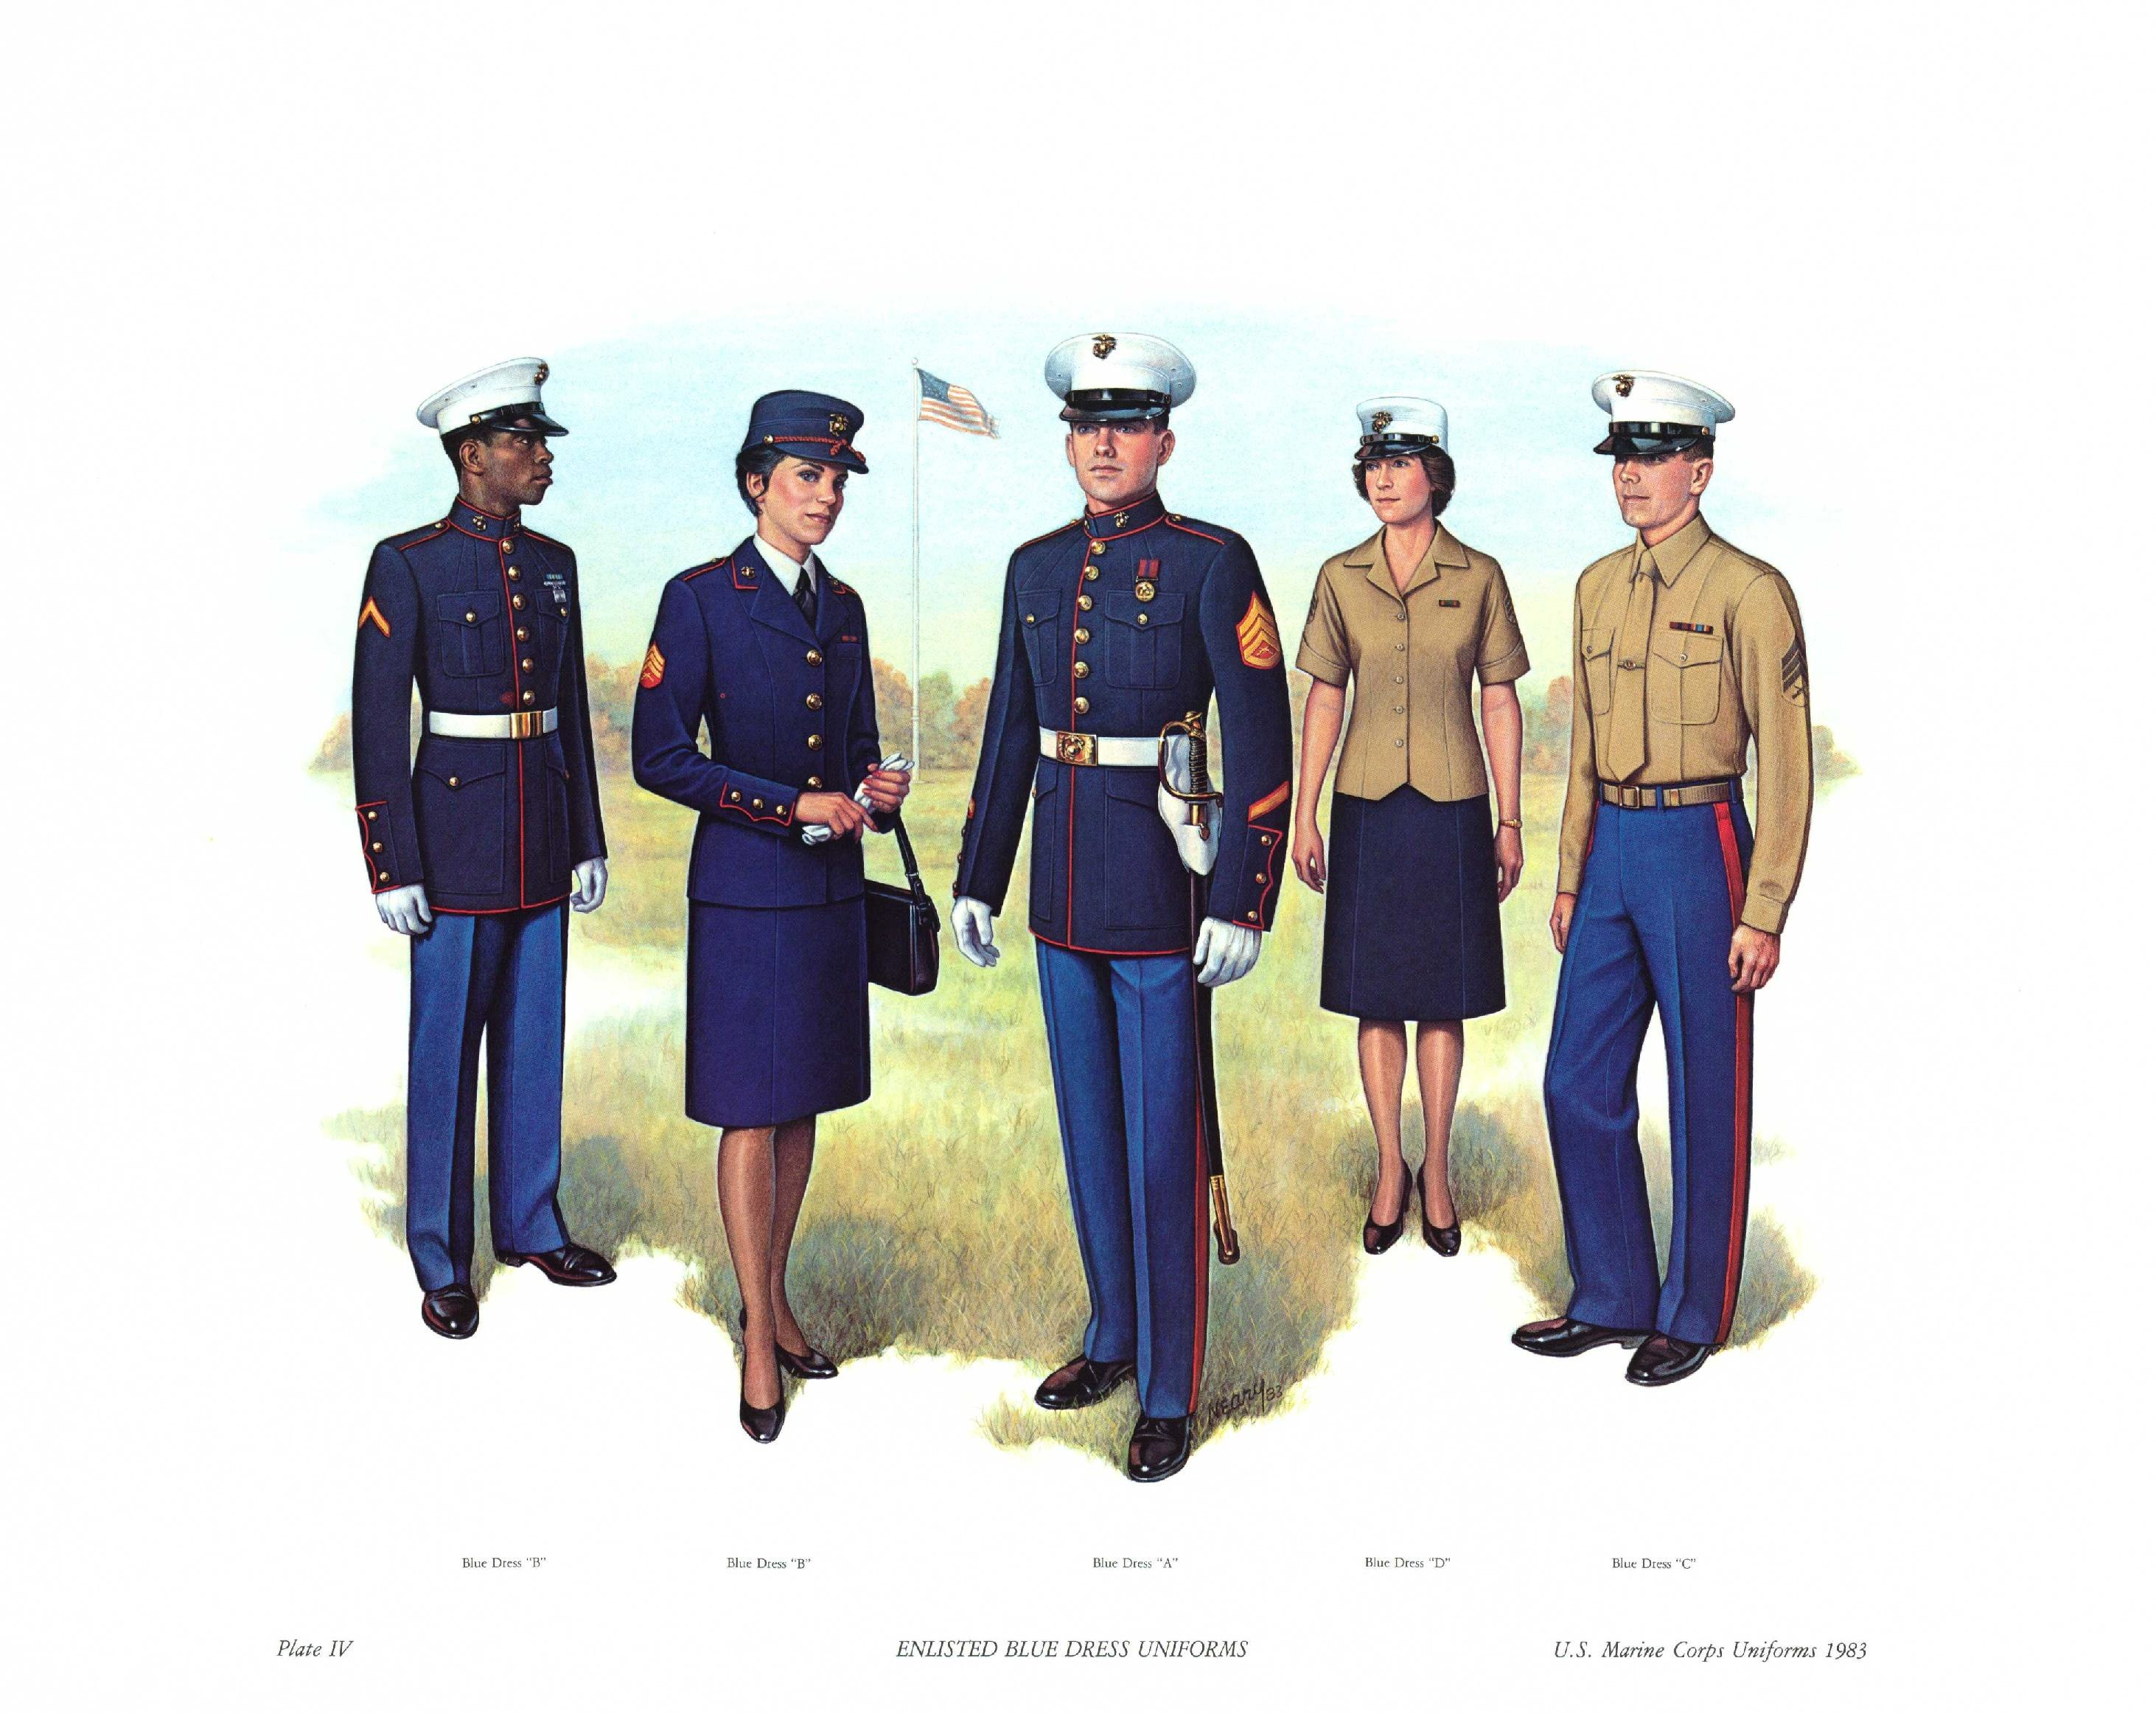 2a3eca46 The most recognizable uniform of the Marine Corps is the Blue Dress  uniform, often seen in recruiting advertisements. It is often called